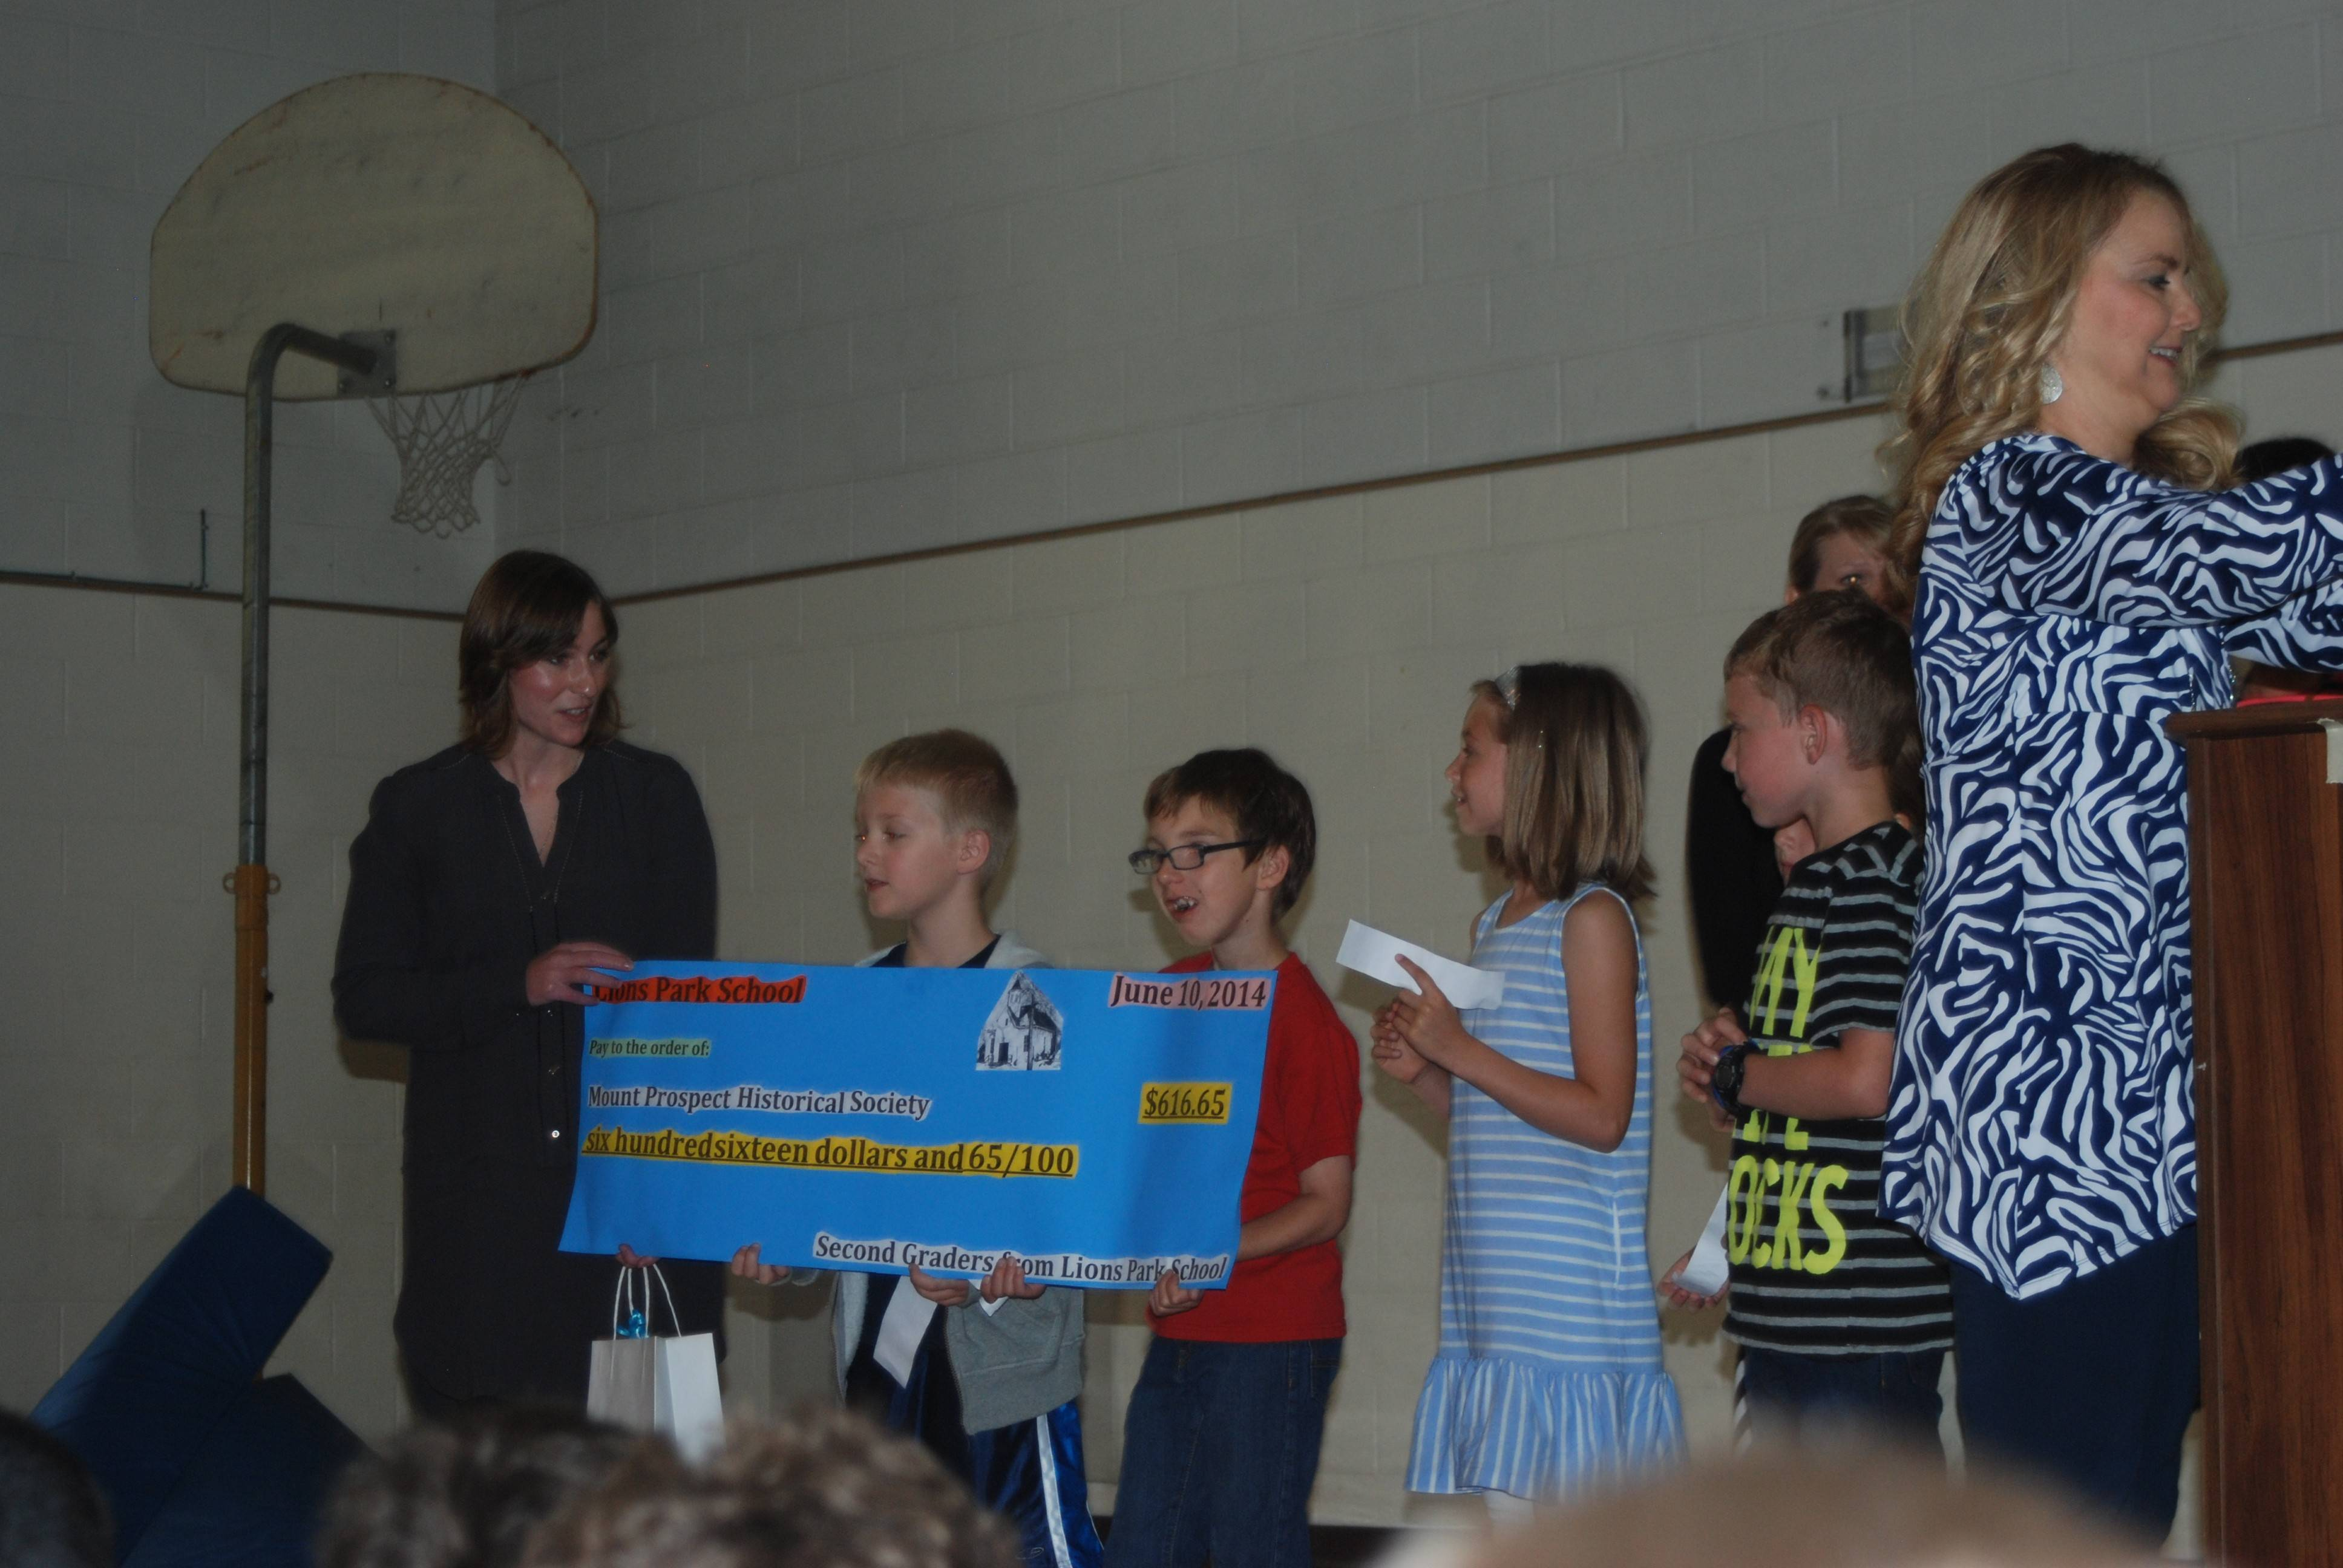 Mount Prospect Historical Society's executive director Lindsay Rice, left, is presented with a check from the second-grade students at Lions Park School. Students, from left, are: Roman Demstrom, Thomas Haban, Charlotte Deines, and Nolan Hahn. Mary Hunt is the teacher in front retrieving the microphone for the students.